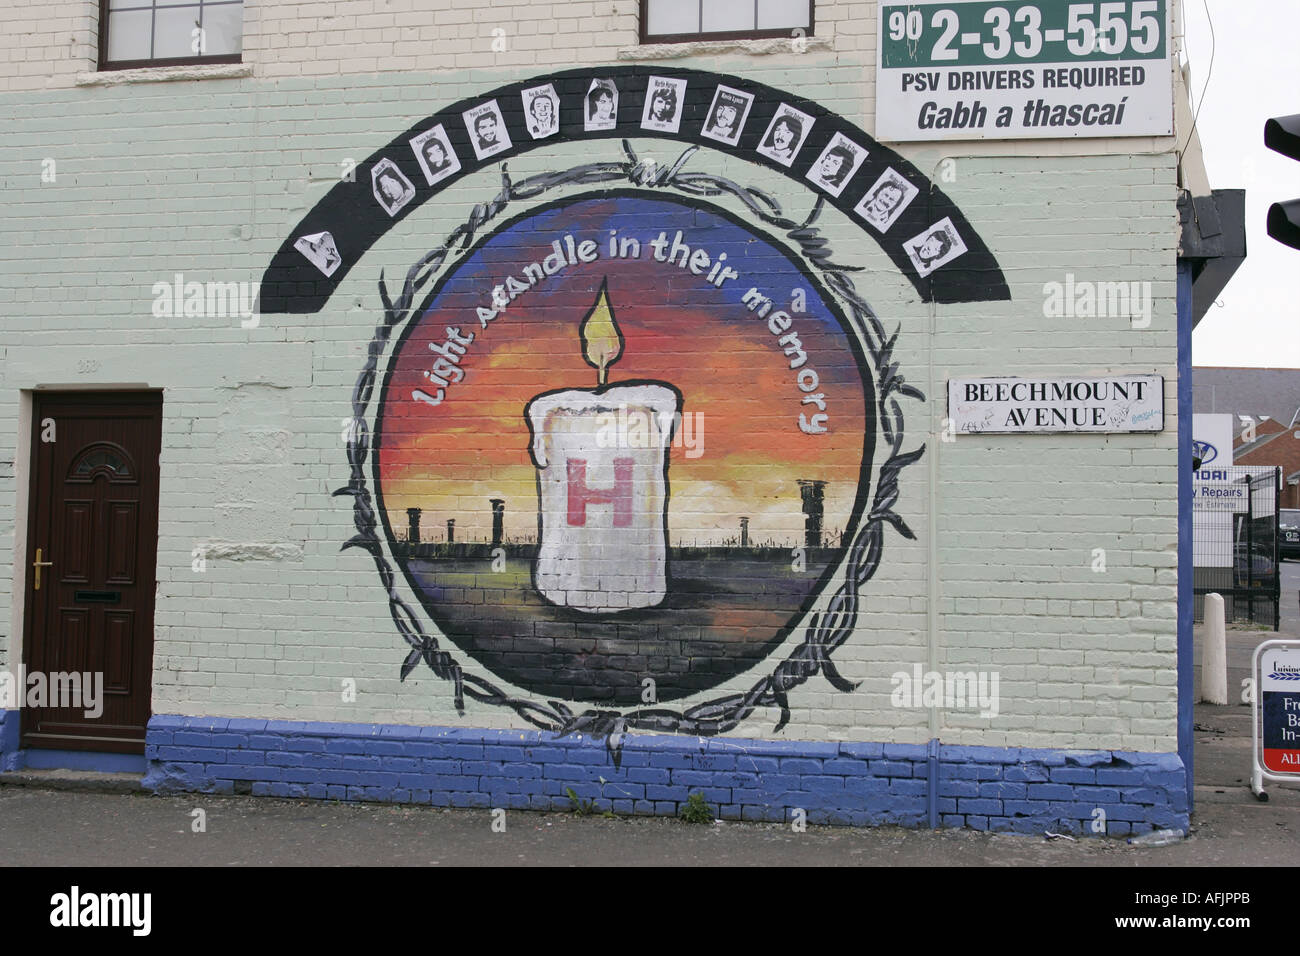 Hunger Strikers Commemoration Republican Wall Mural Beechmount Rpg Stock Photo Alamy